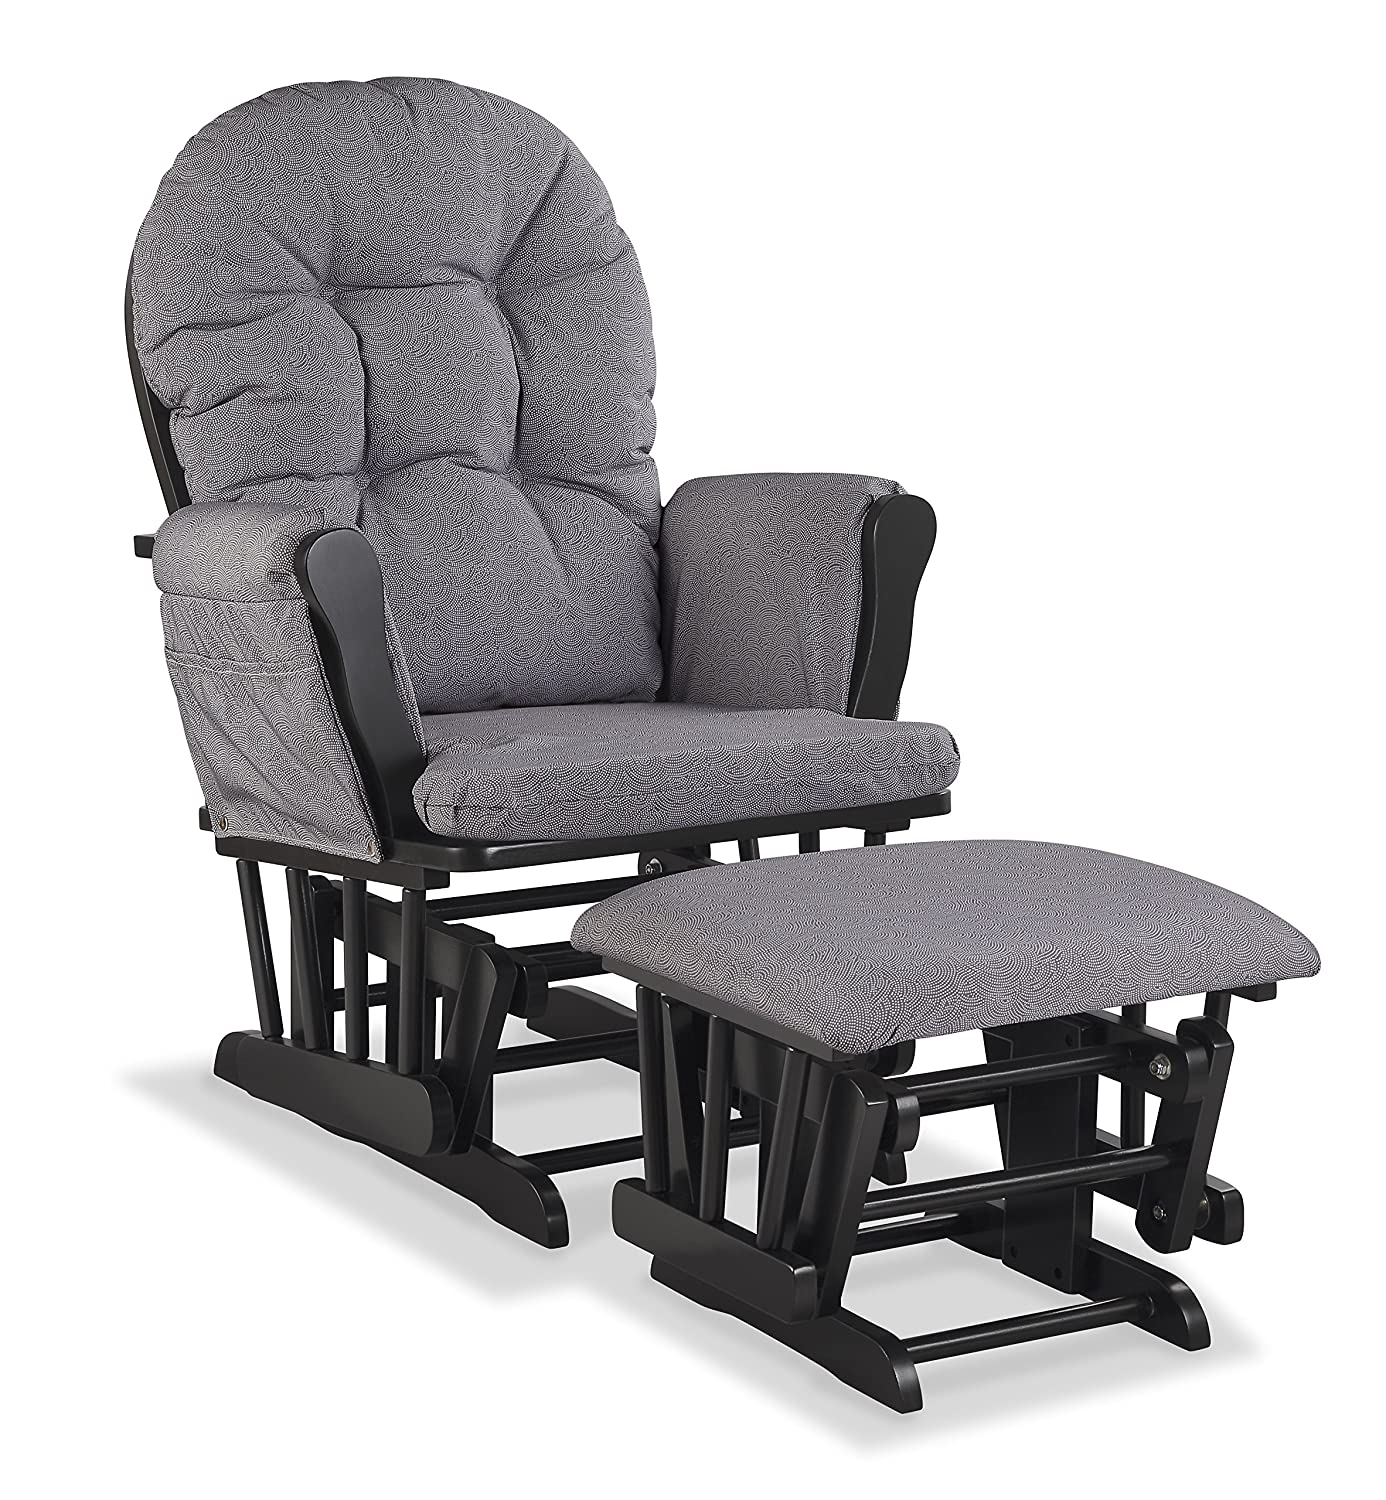 Storkcraft Hoop Custom Glider and Ottoman, Black/Slate Gray Swirl 06550-615B